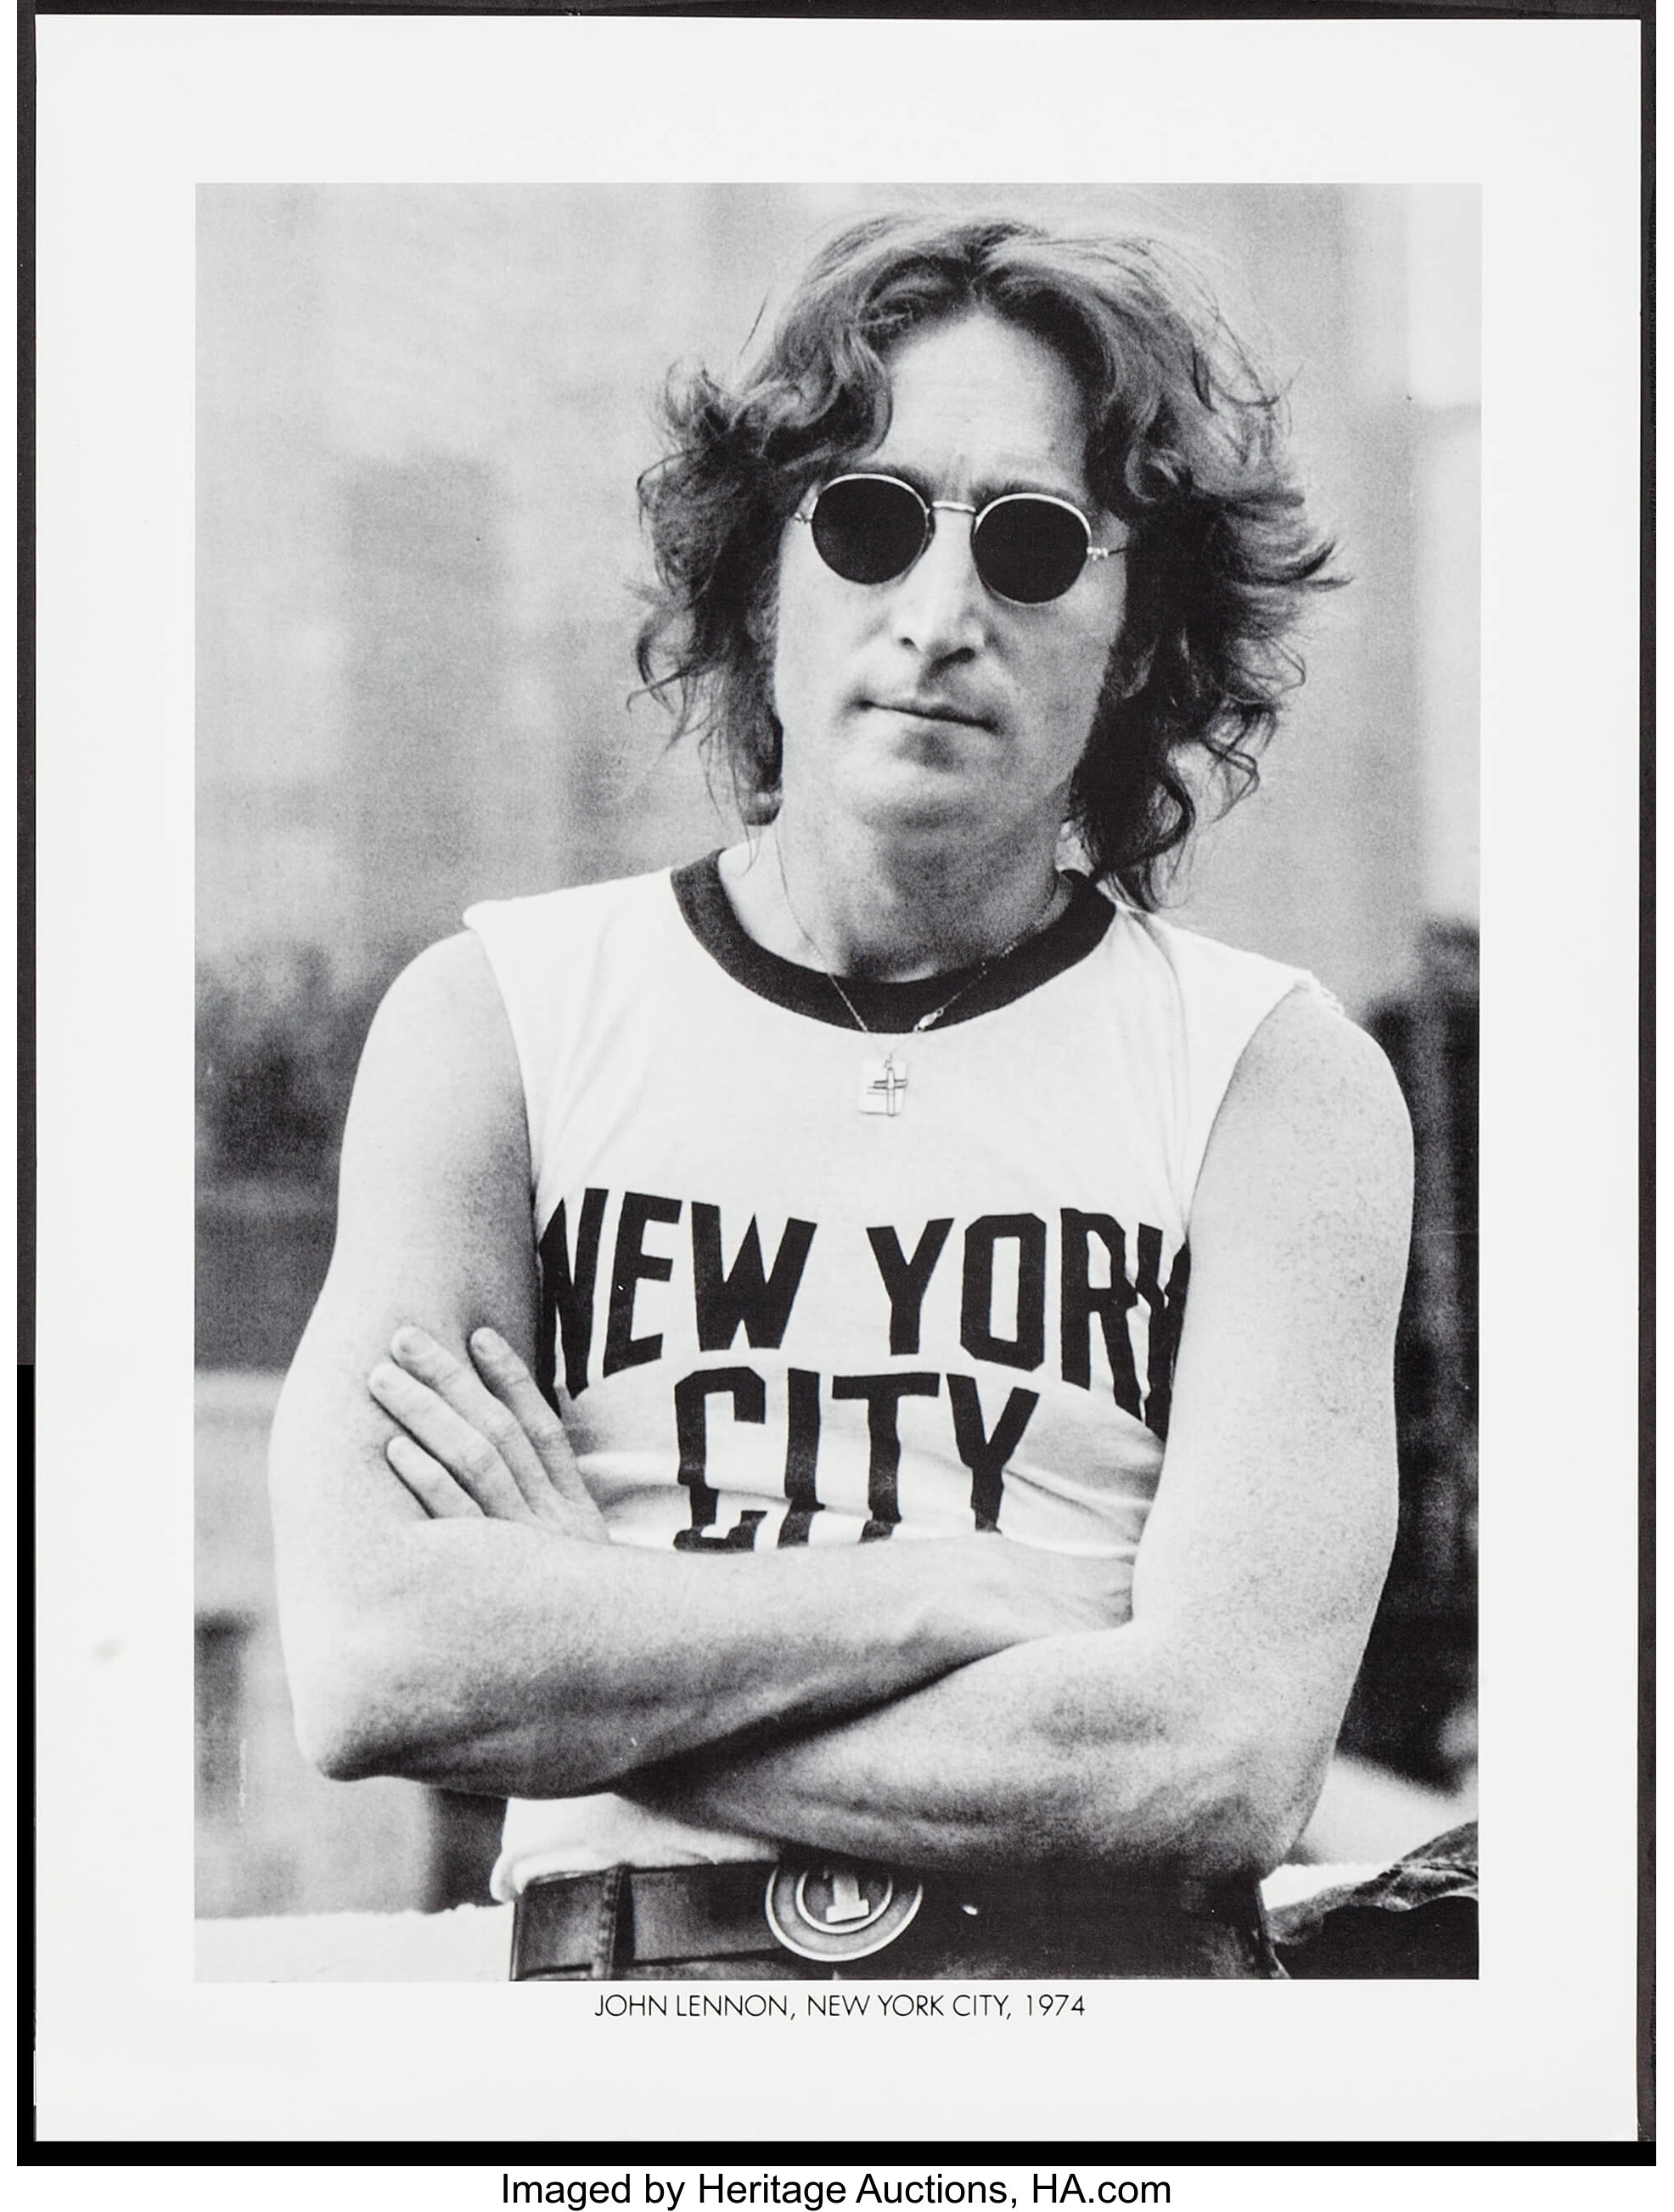 John Lennon By Bob Gruen 1980s Personality Poster 18 X 24 Lot 53228 Heritage Auctions